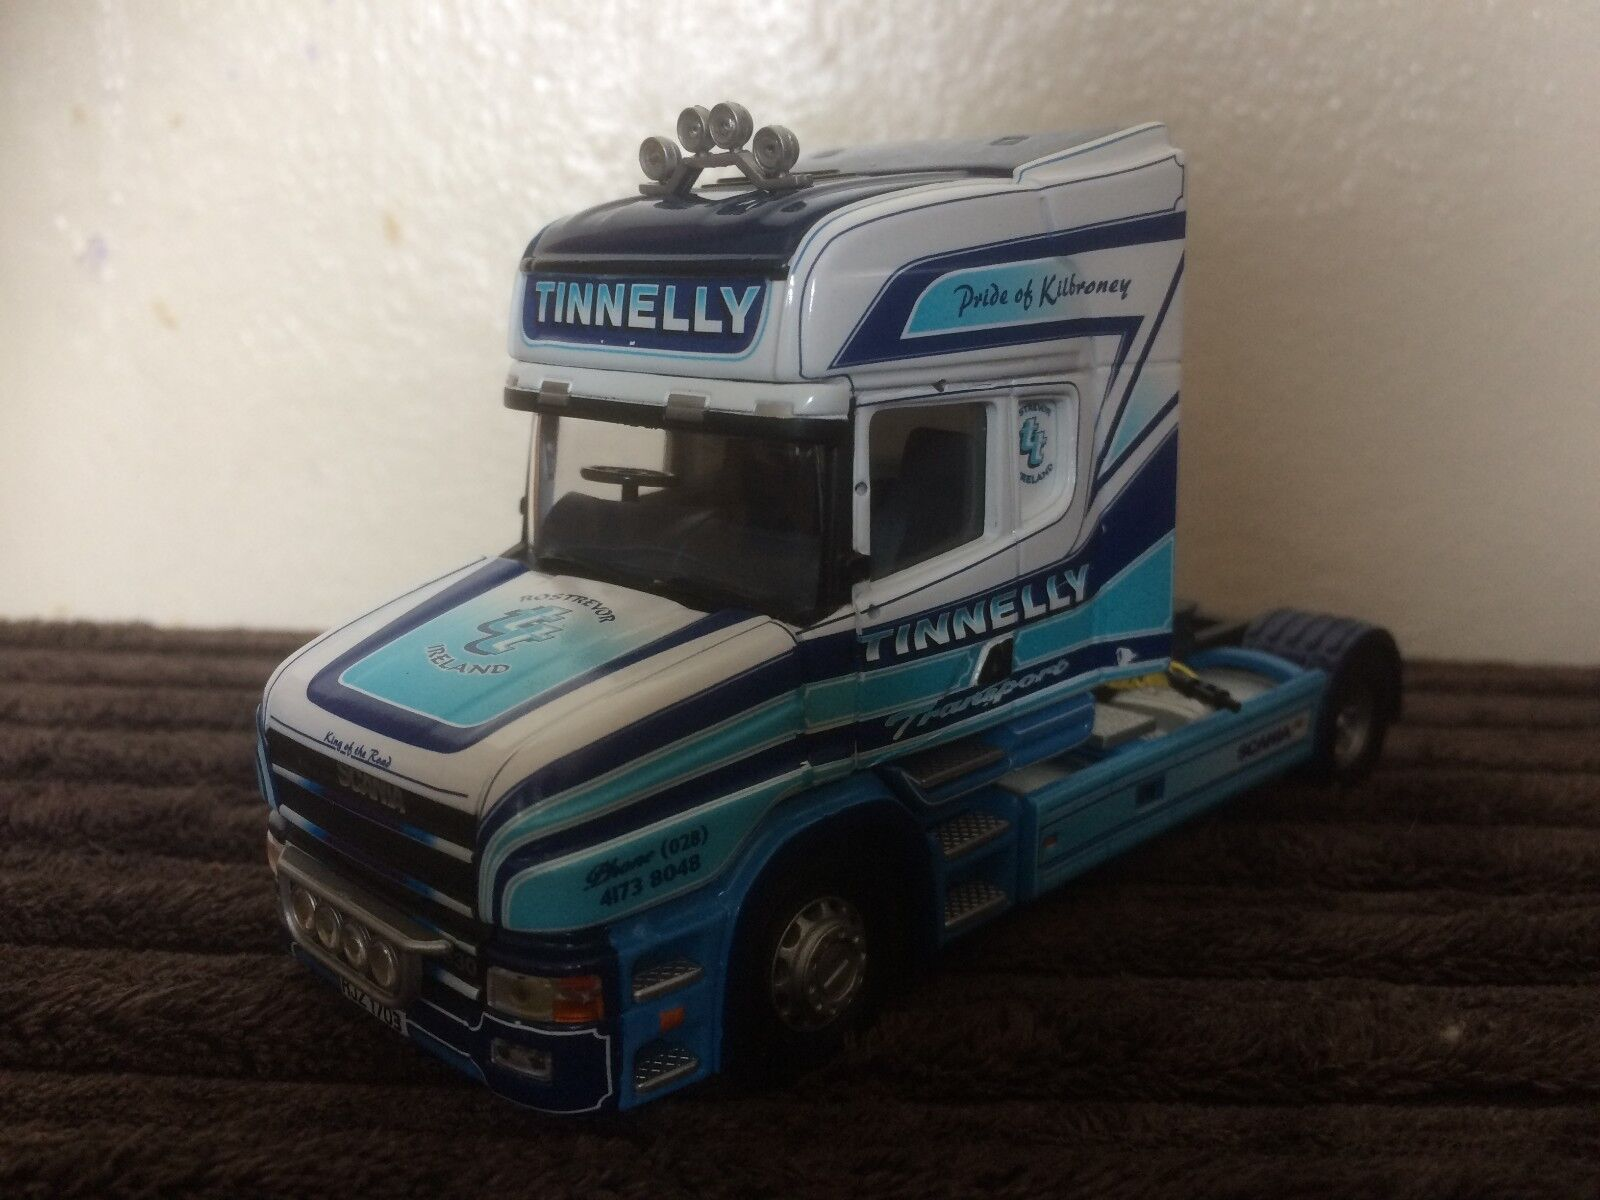 CORGI HEAVY HAULAGE moderne Camions Scania T Cab tinnelly seulement 1 50